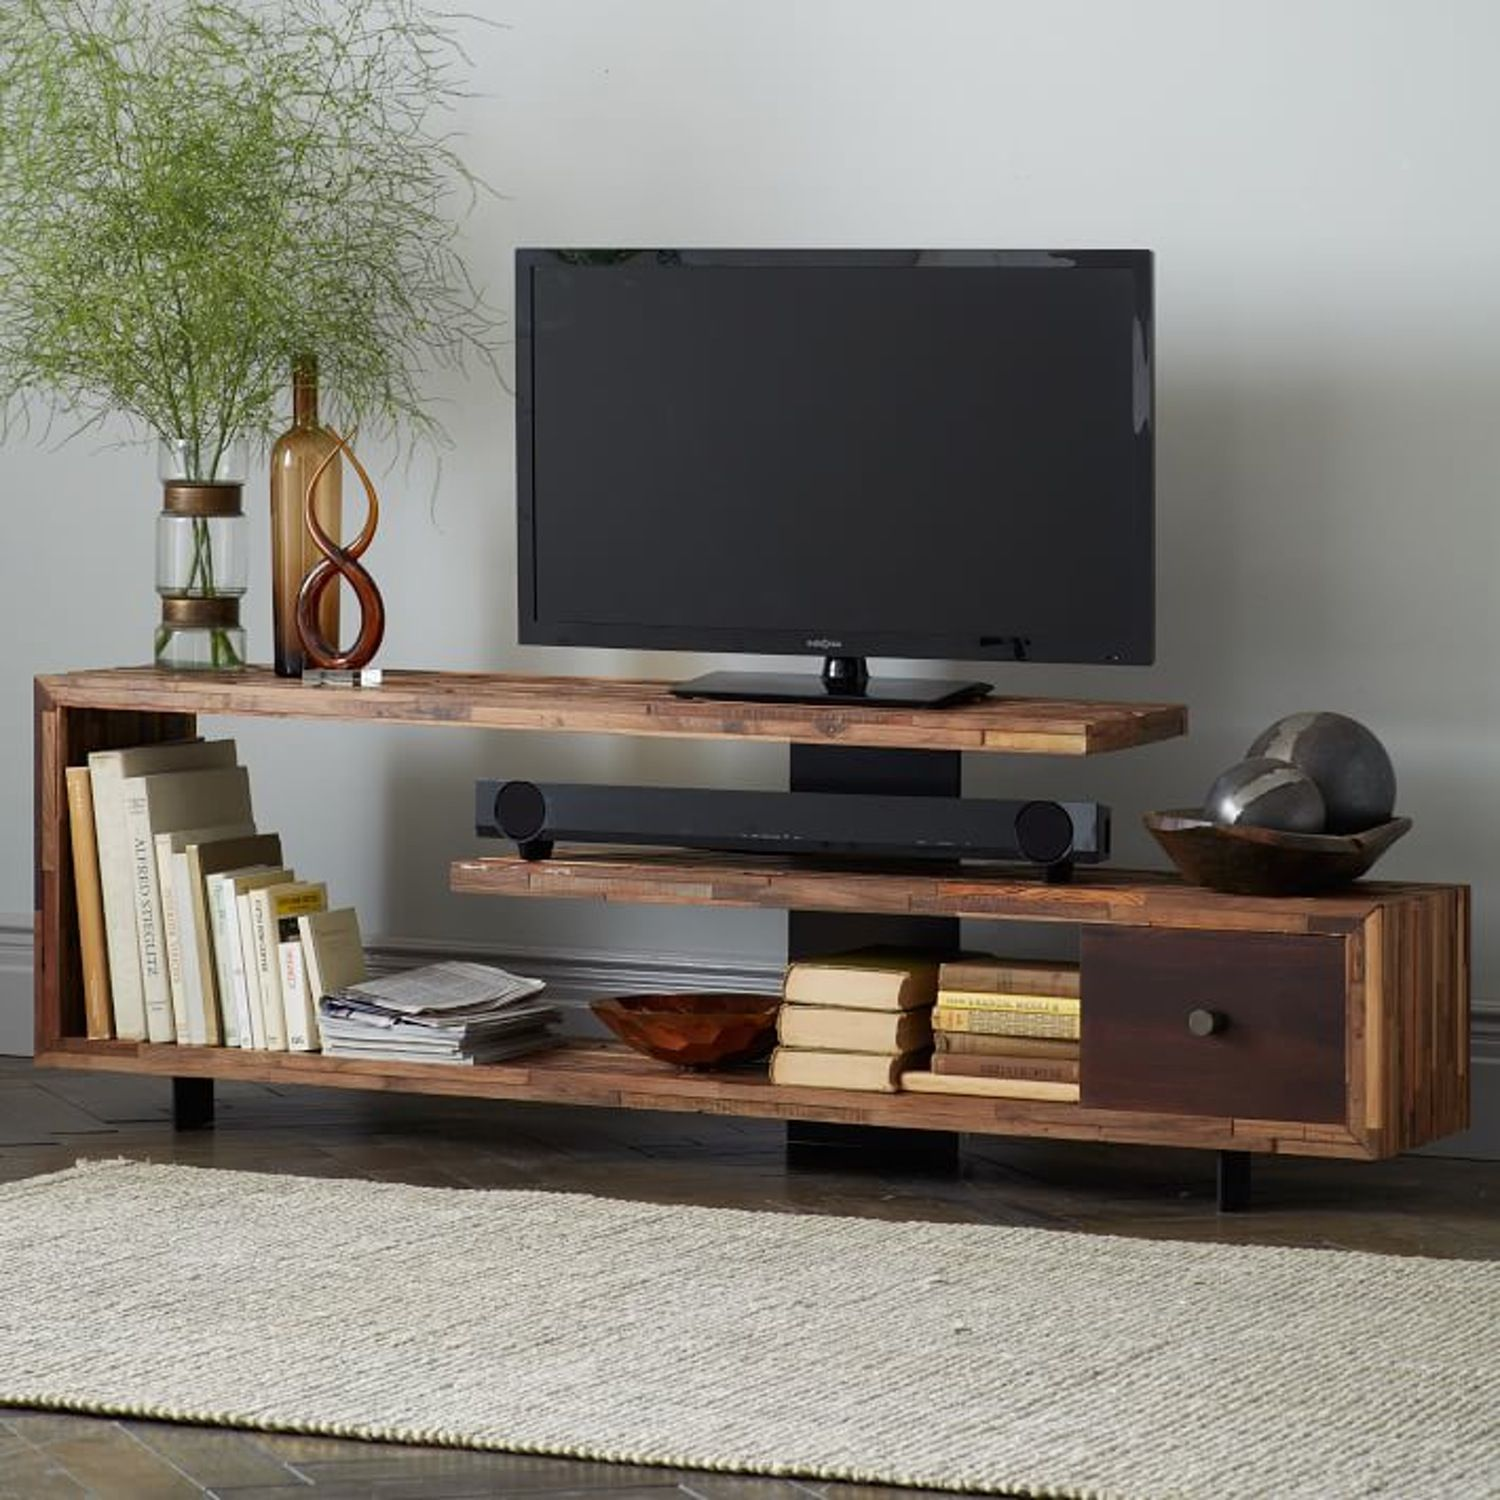 11 Of The Best Media Consoles Tv Stands Tv Stand Wood Wood Console Home